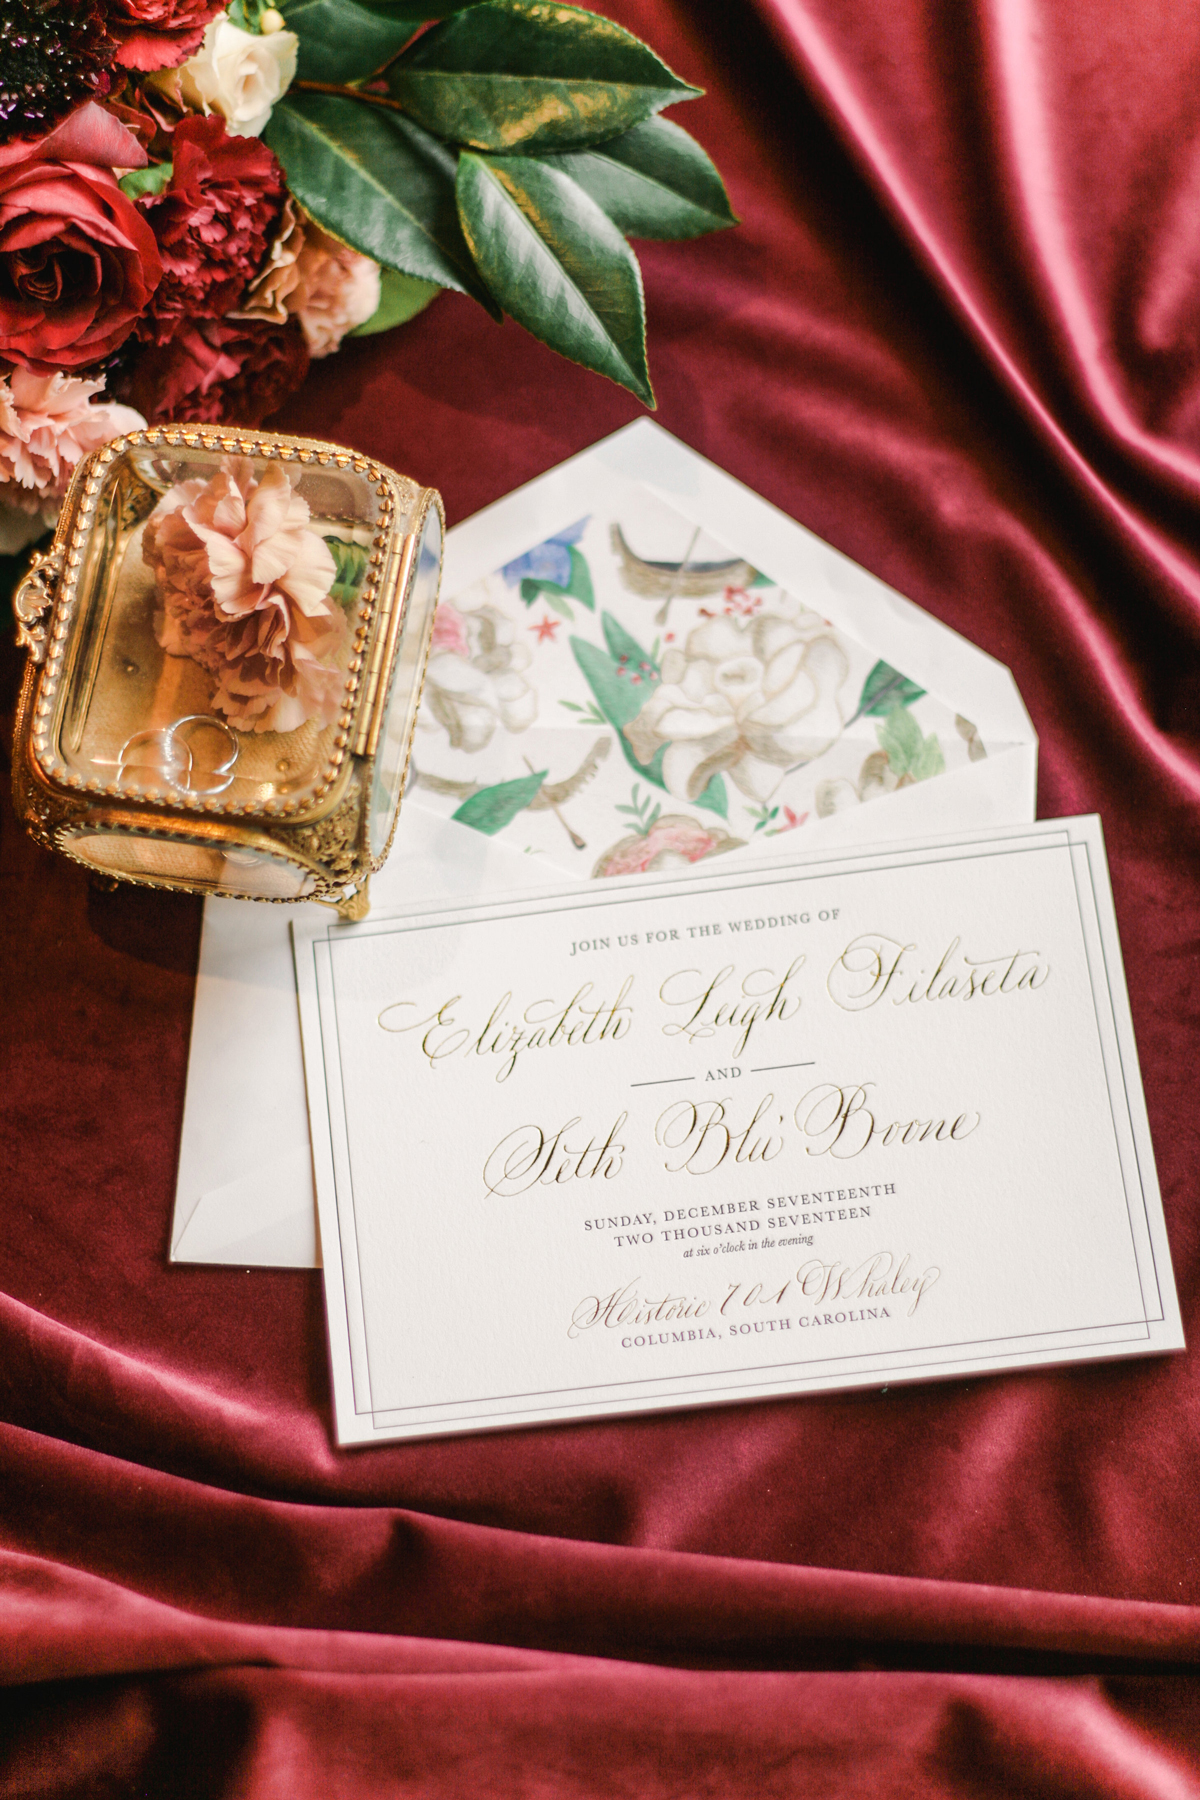 elizabeth seth wedding invitation against red drapery background